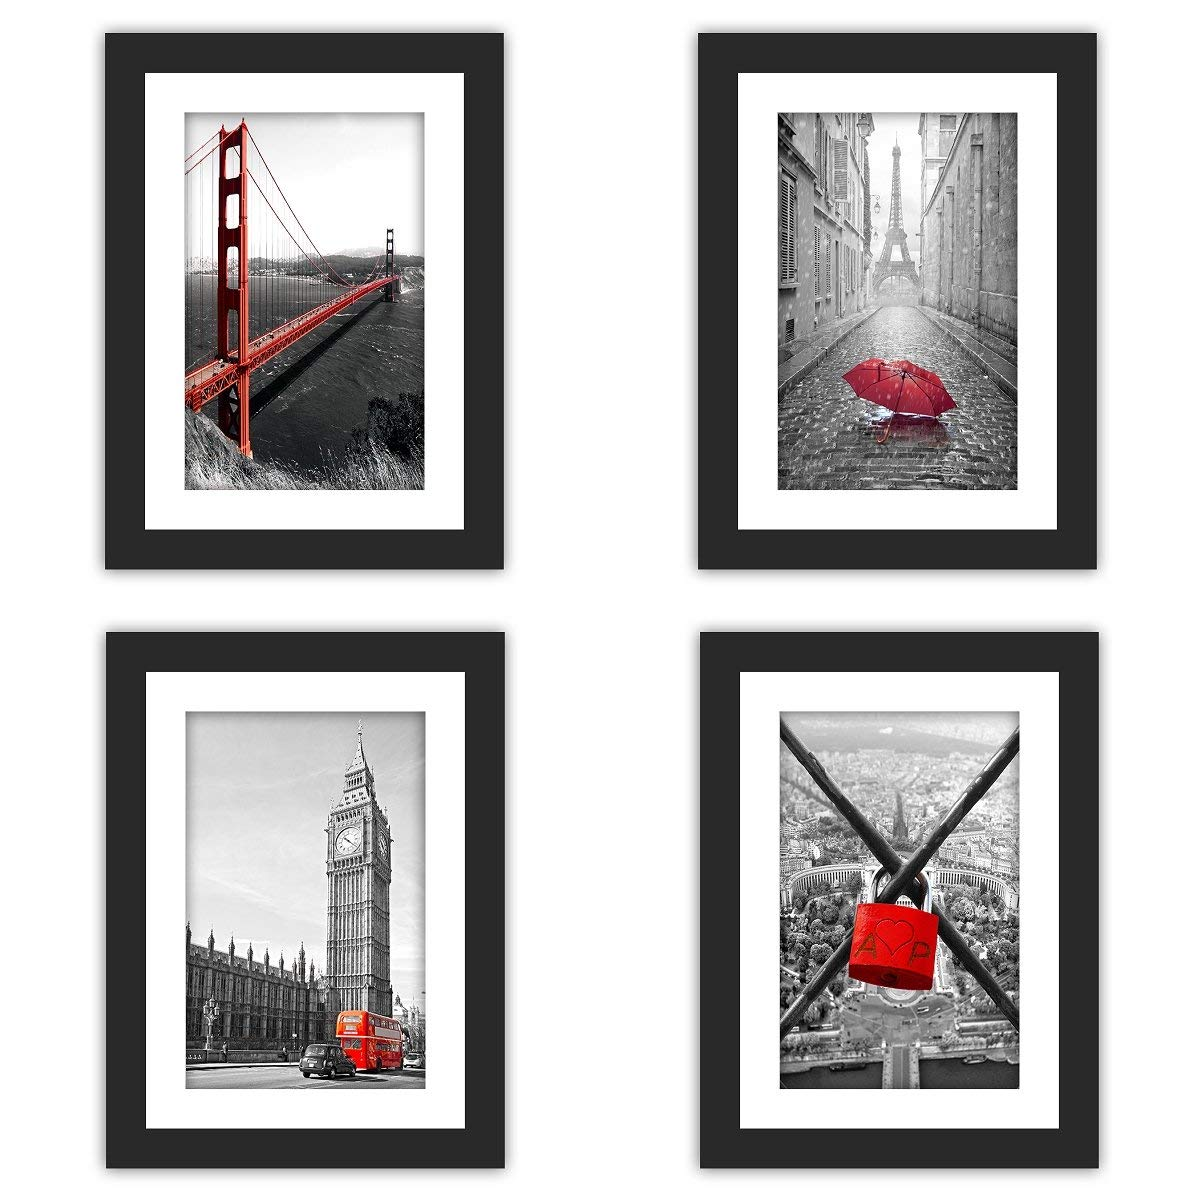 SMARTWALLSTATION 4X Real Glass Wood Frame Black Fit 5x7,1 Mat Matted Fit Image Pictures Photo 4x6 Desktop Stand or Wall Hang Vertical Horizontal Family Decoration (1-4)